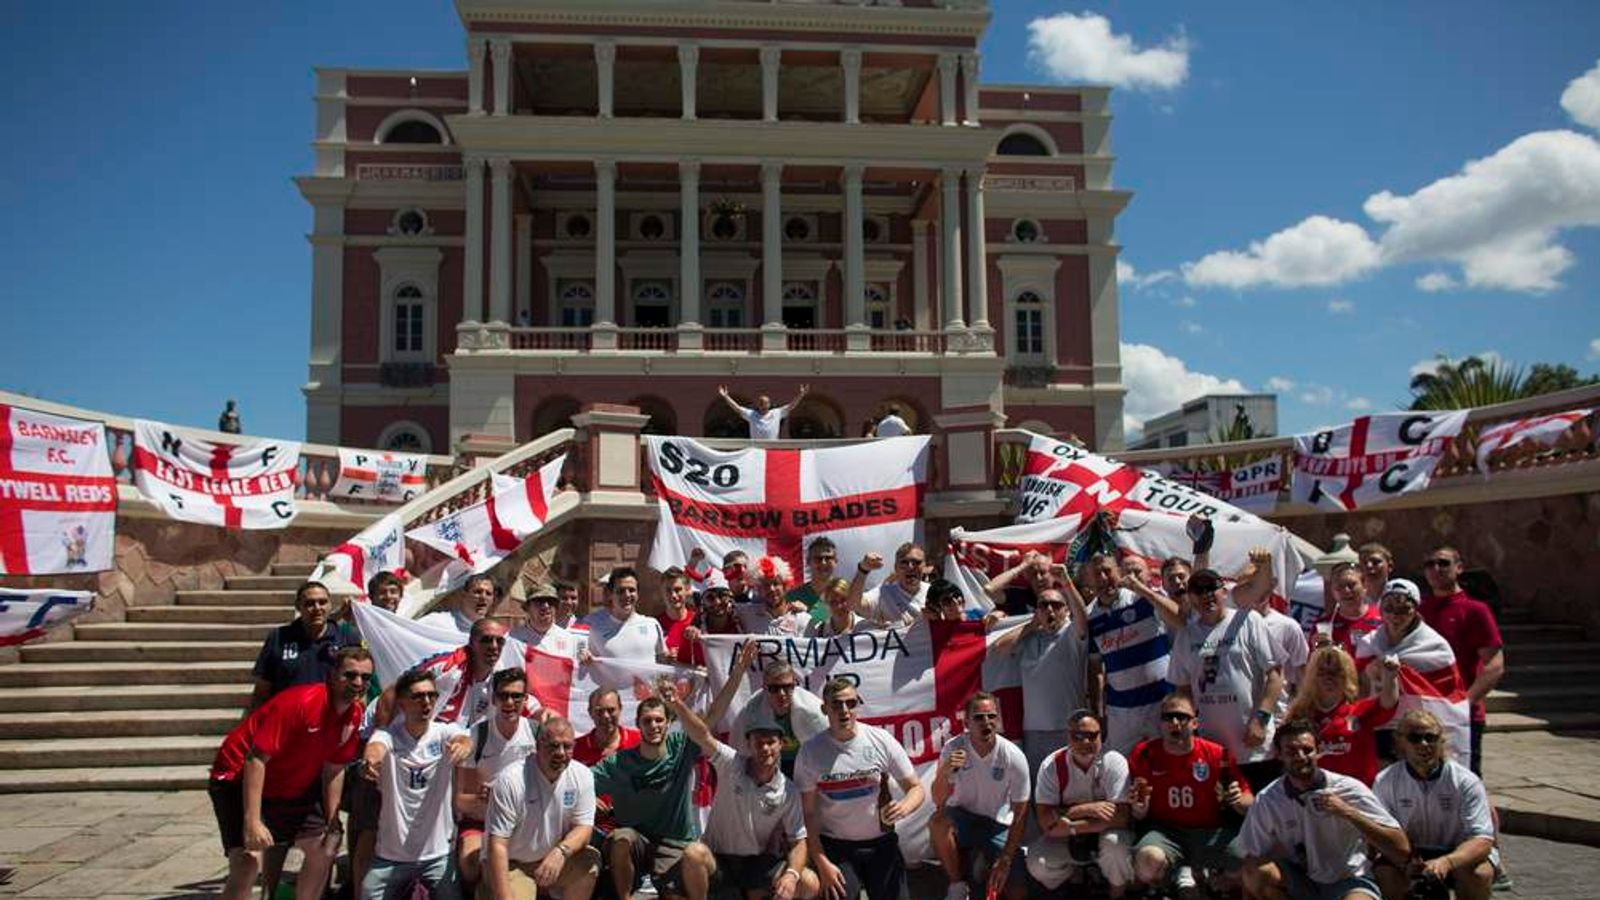 England Fans World Cup Tour - England Versus Italy